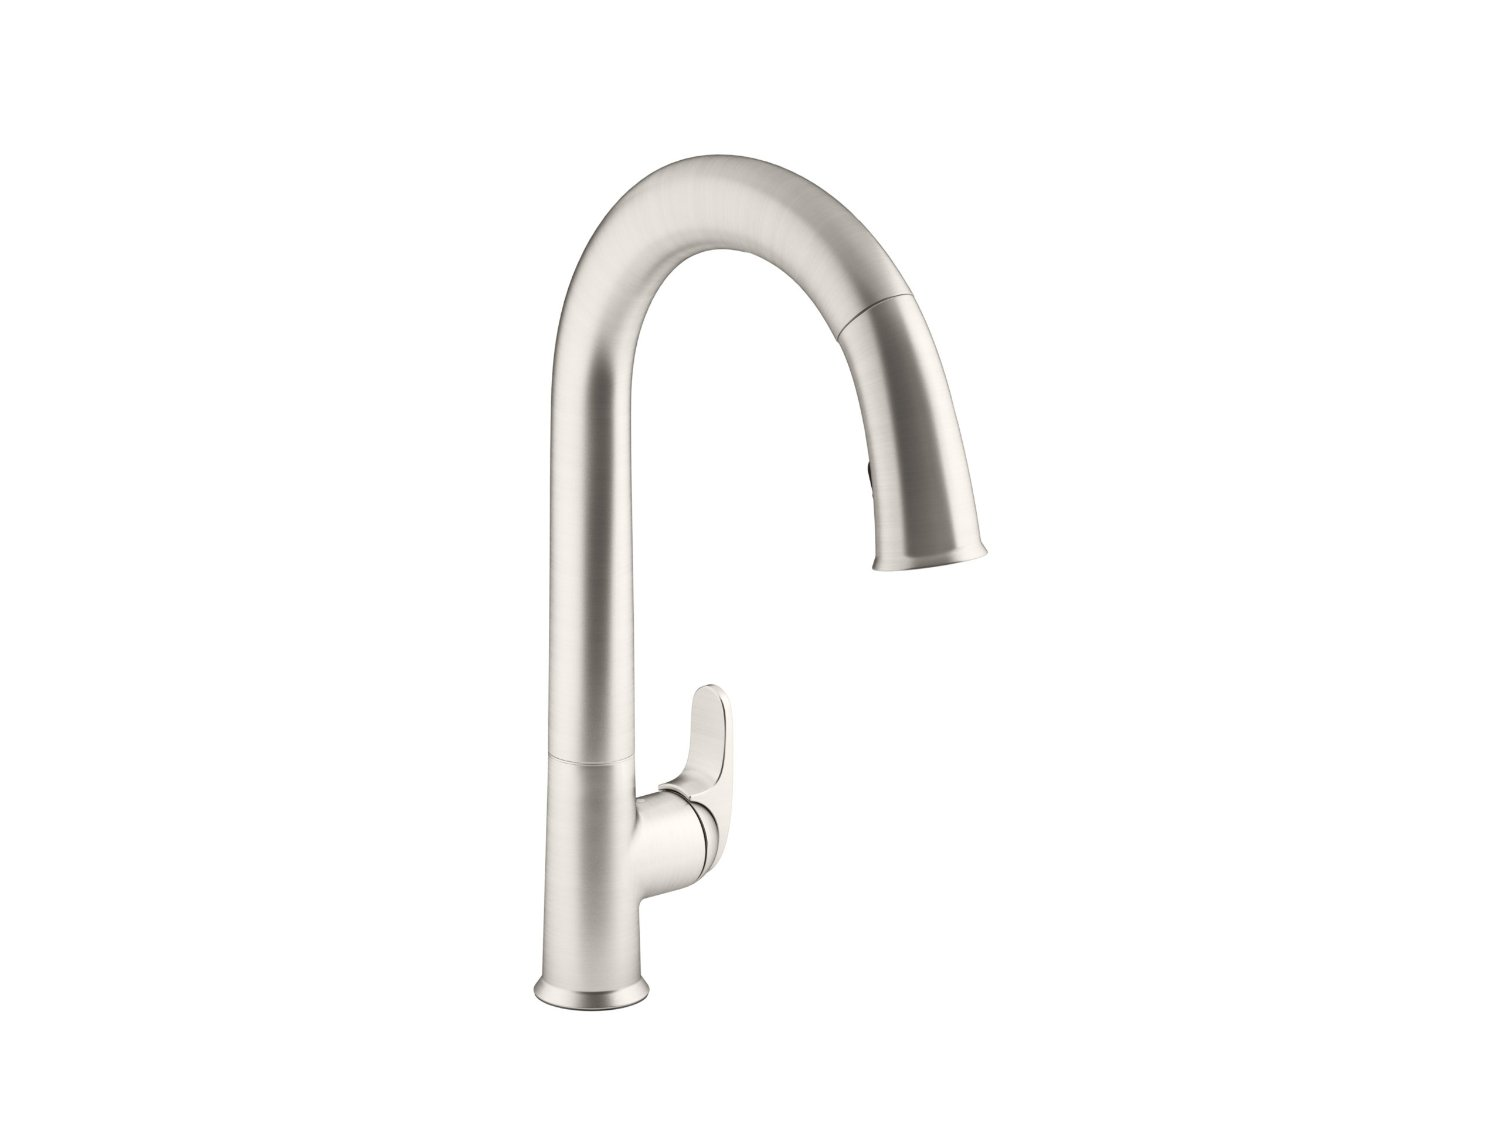 delta touchless kitchen faucet islands with sink kohler sensate faucets hub